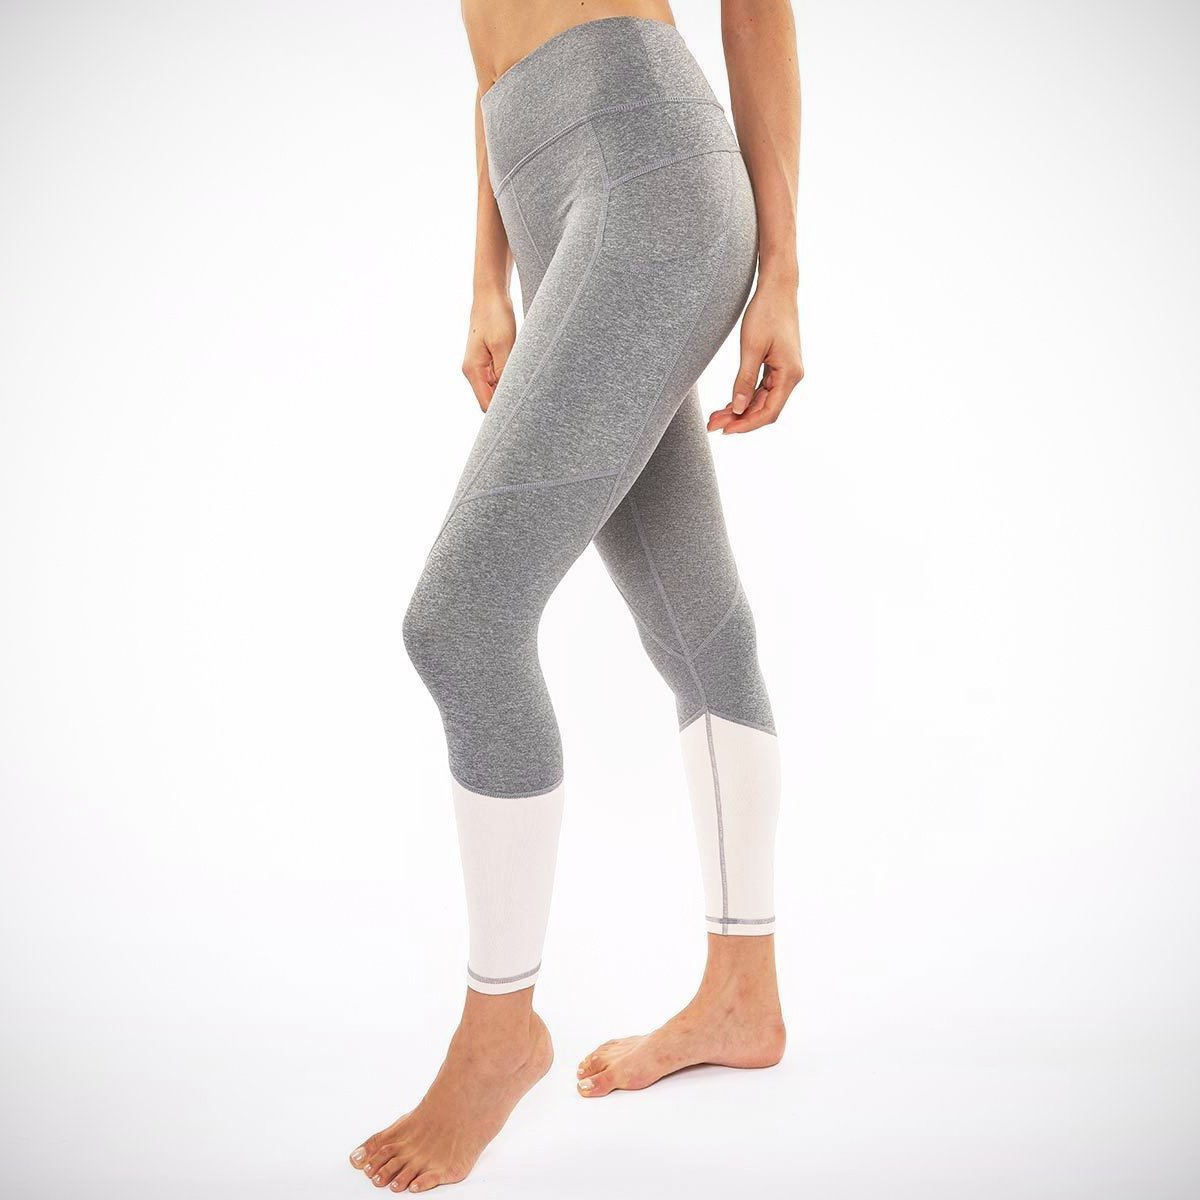 Riley 7/8 Medium Waist Tight in Heather Grey/Blush